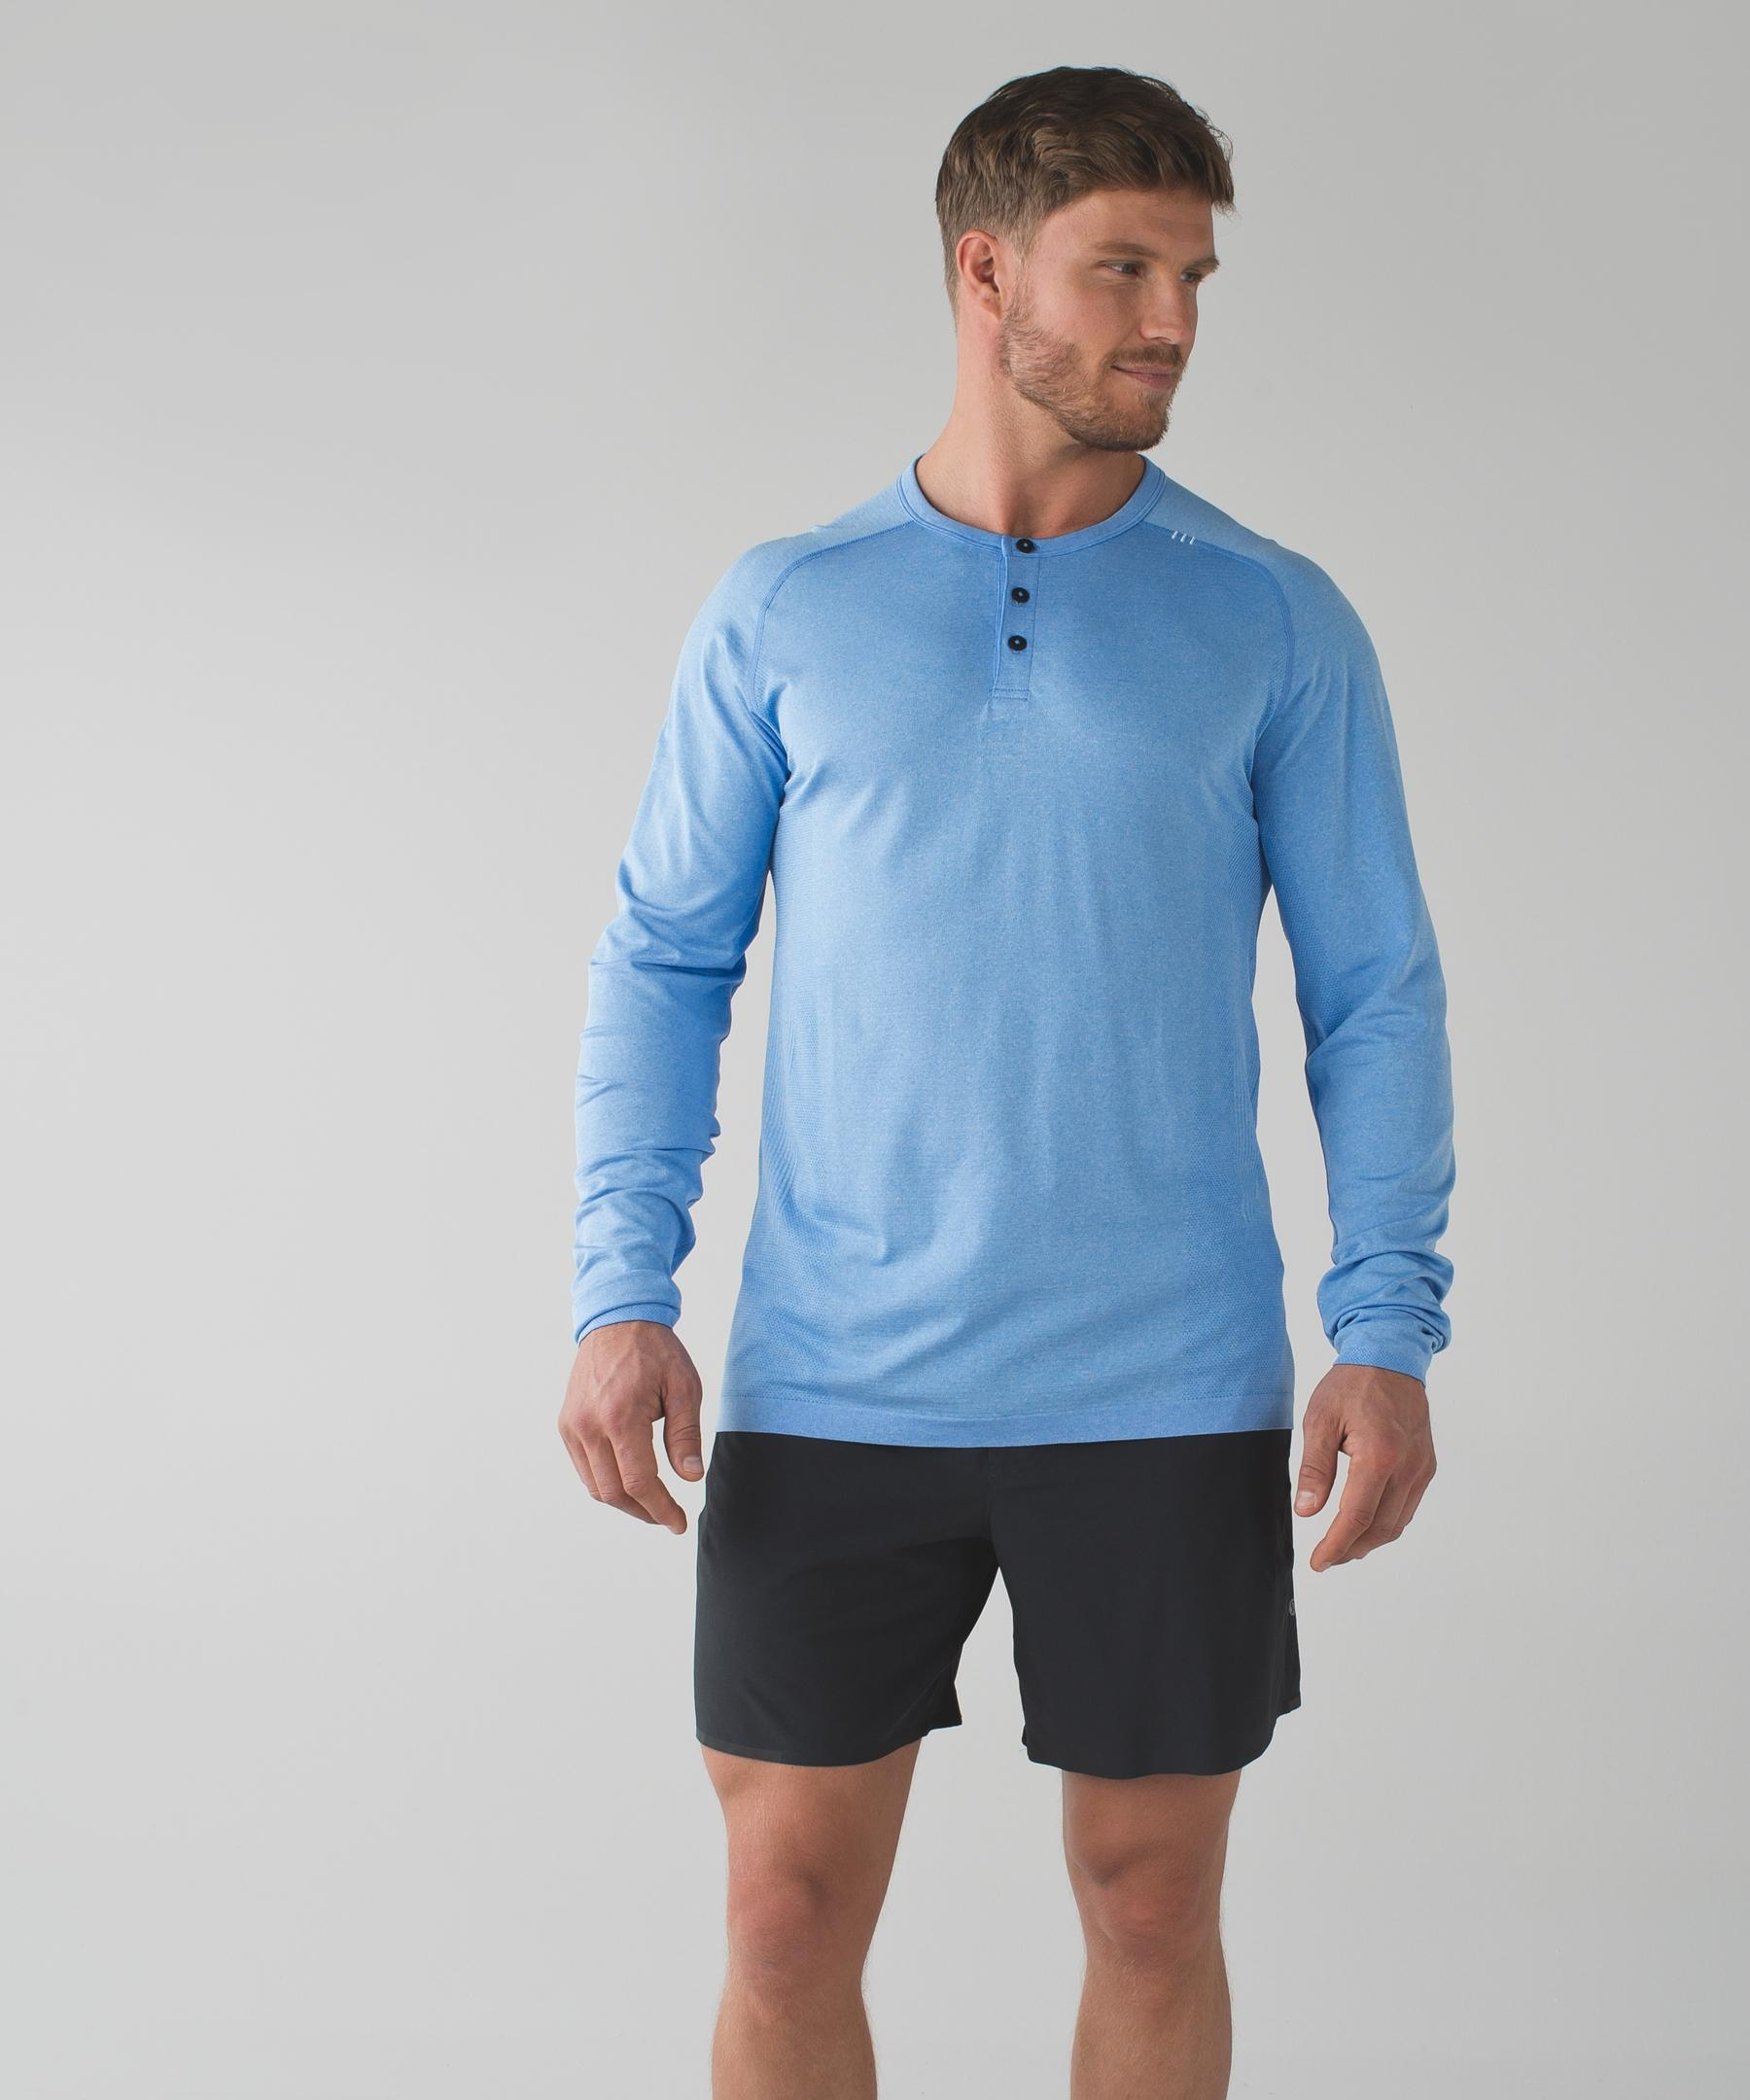 831a1ccd43e52e Lyst - lululemon athletica Metal Vent Tech Long Sleeve Henley in ...